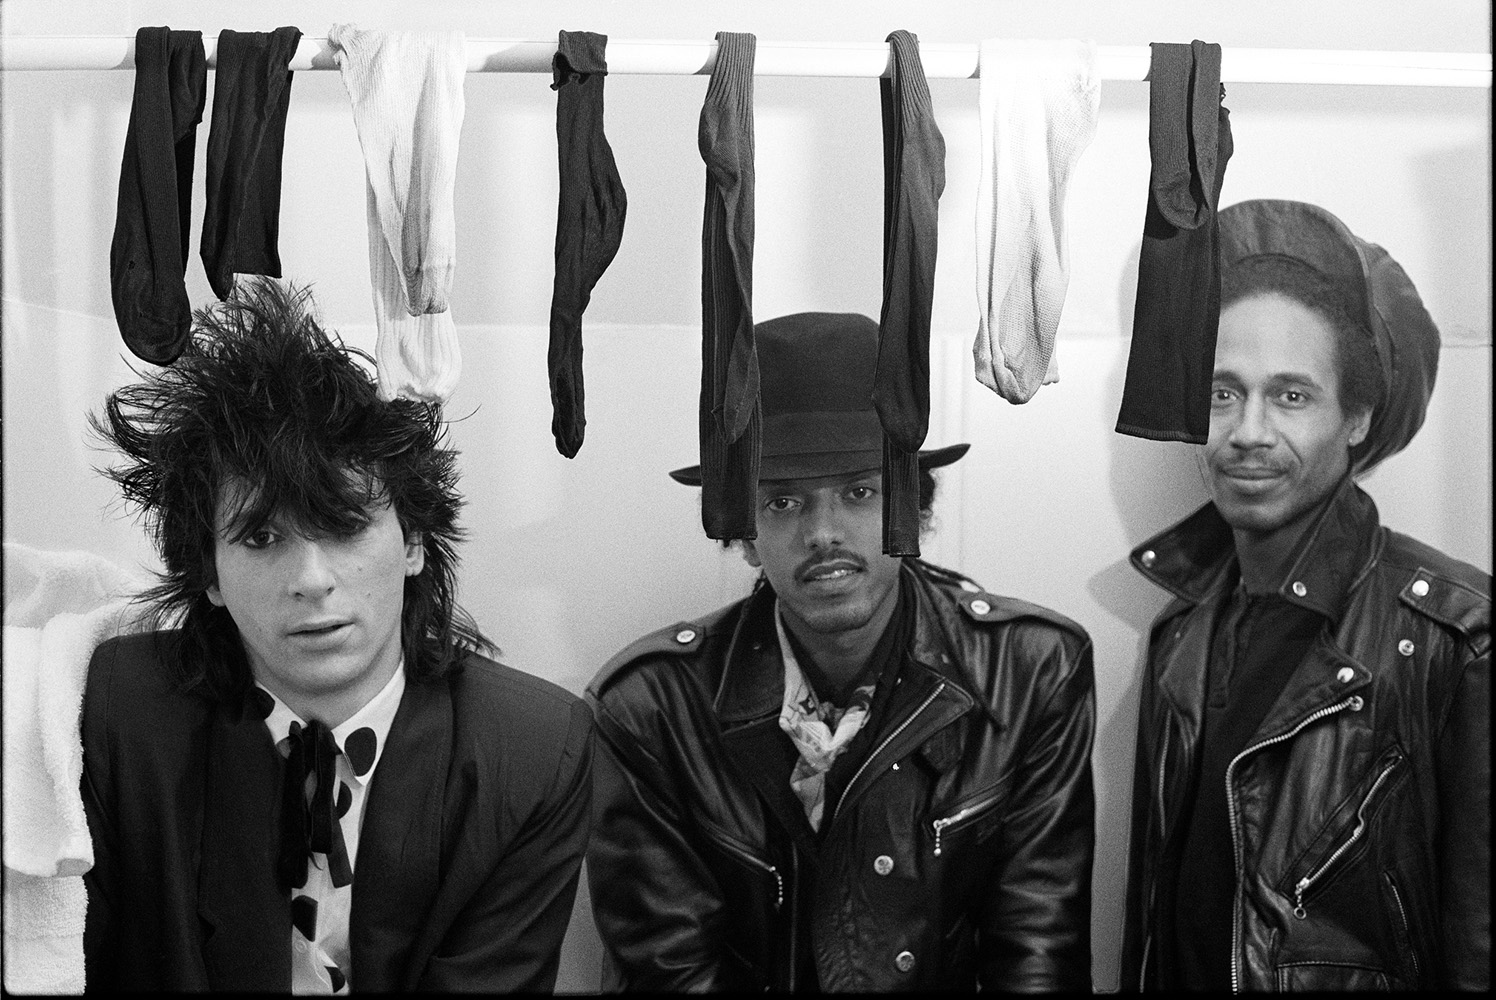 Johnny_Thunders_and_band_118_#2_shot_4_Lucas.jpg